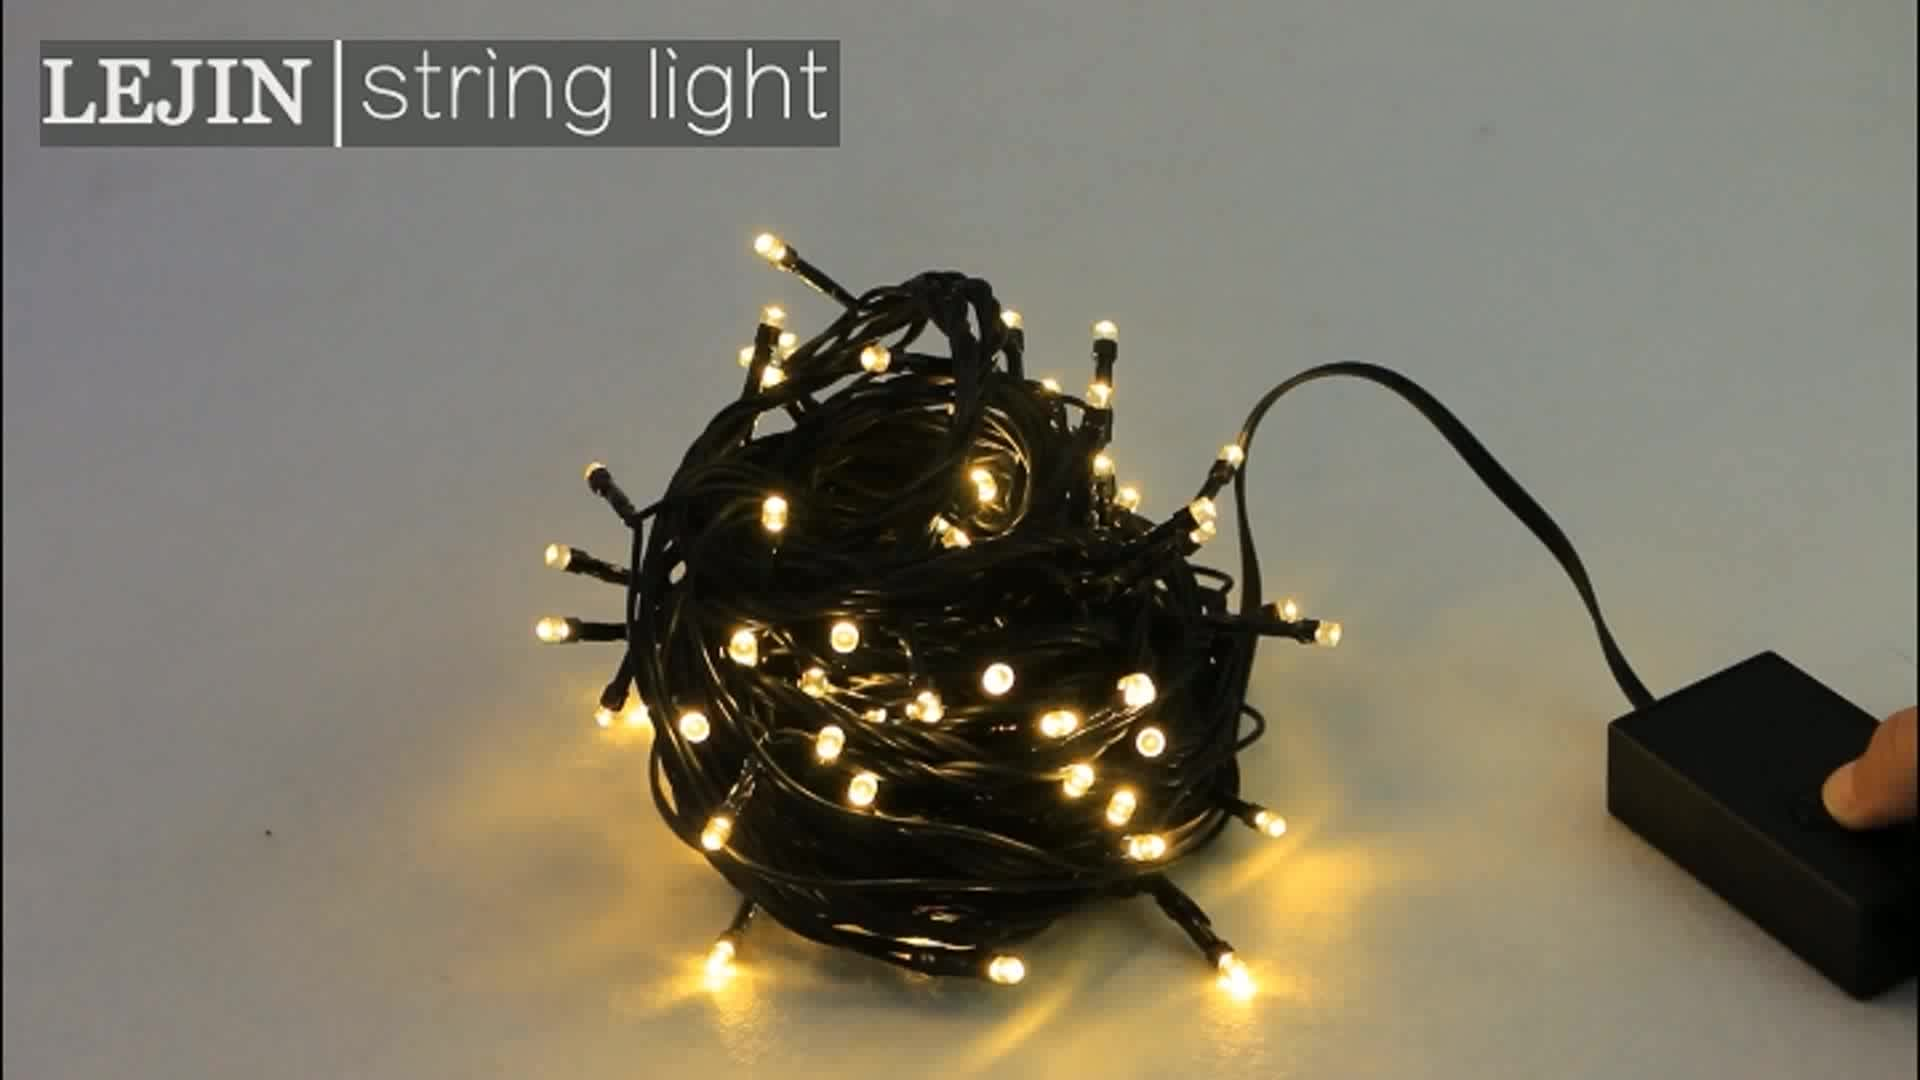 2016 hot sale led christmas birthday party decoration string light ball light buy led ball. Black Bedroom Furniture Sets. Home Design Ideas